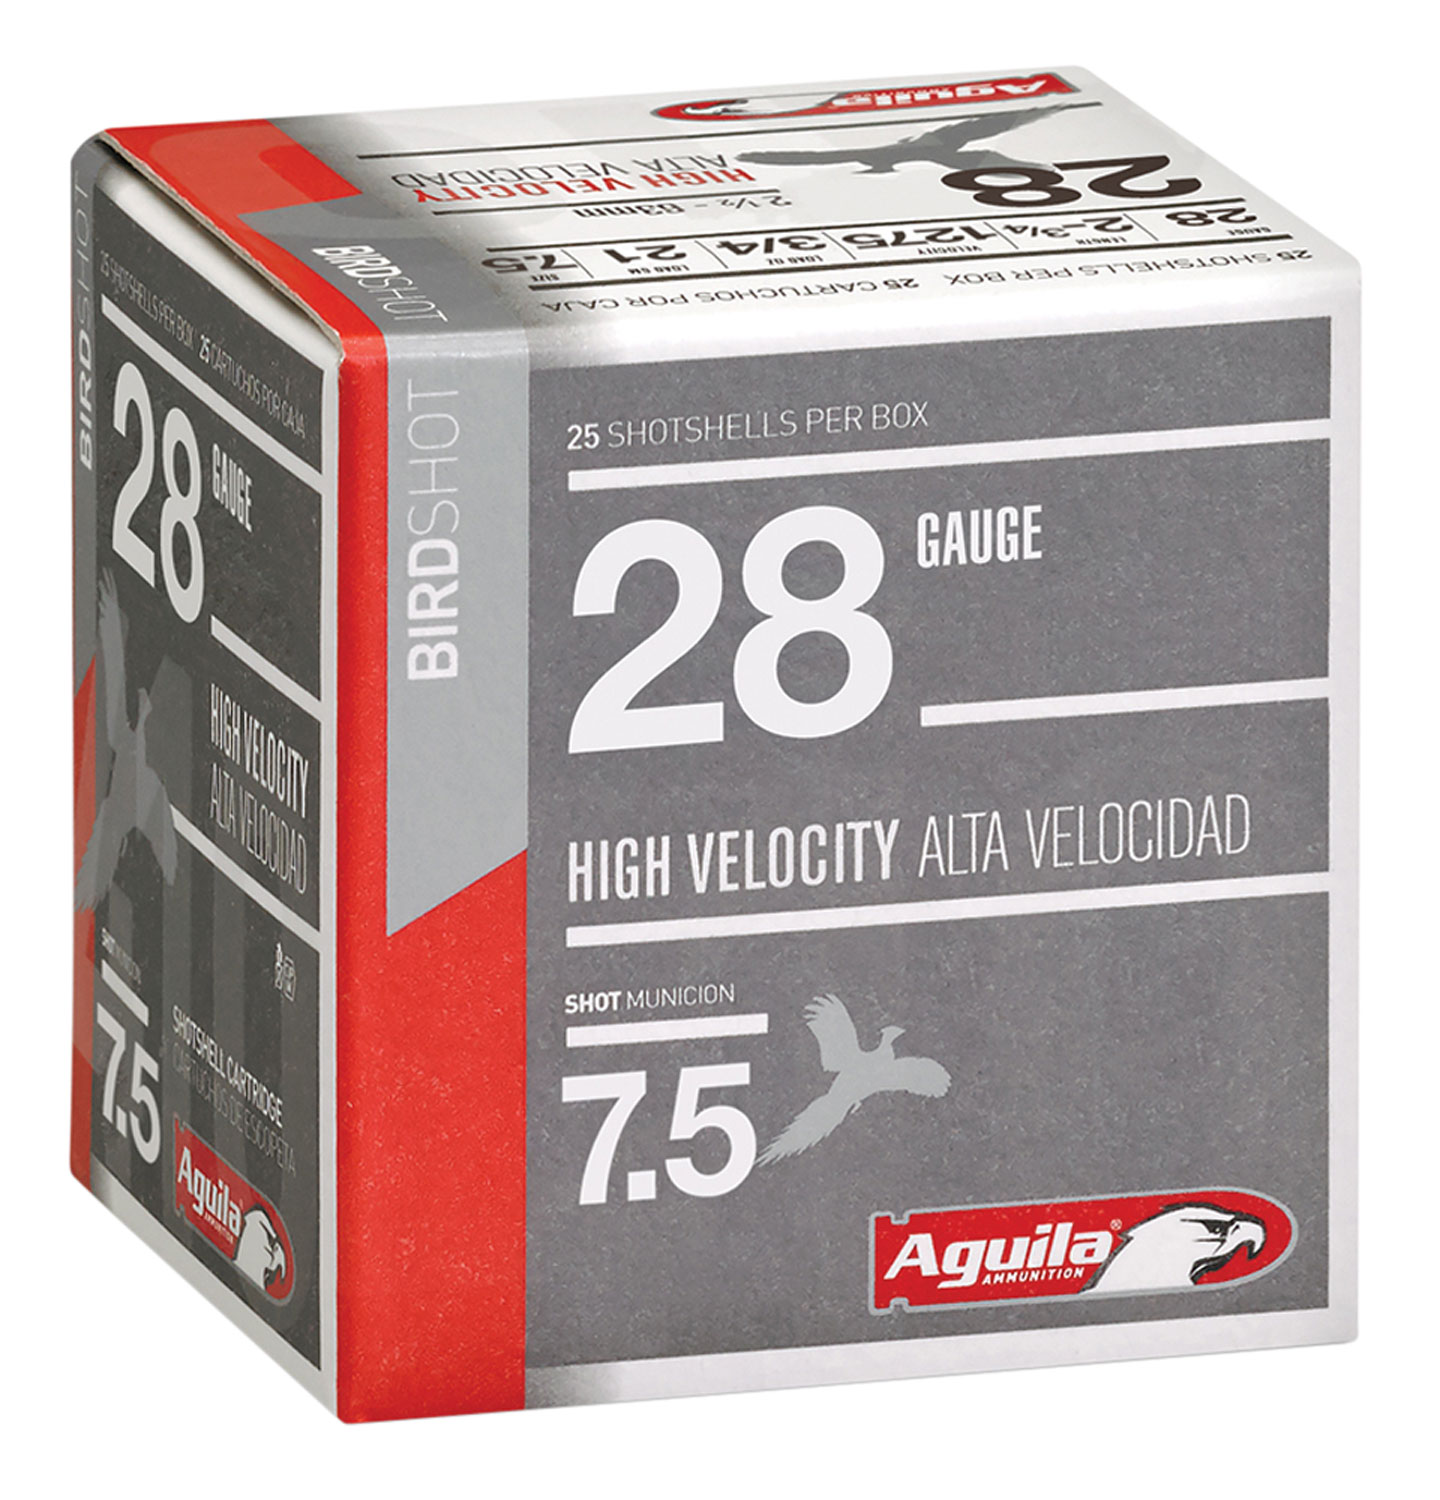 Aguila 1CHB2873 Hunting High Velocity 28 Gauge 2.75